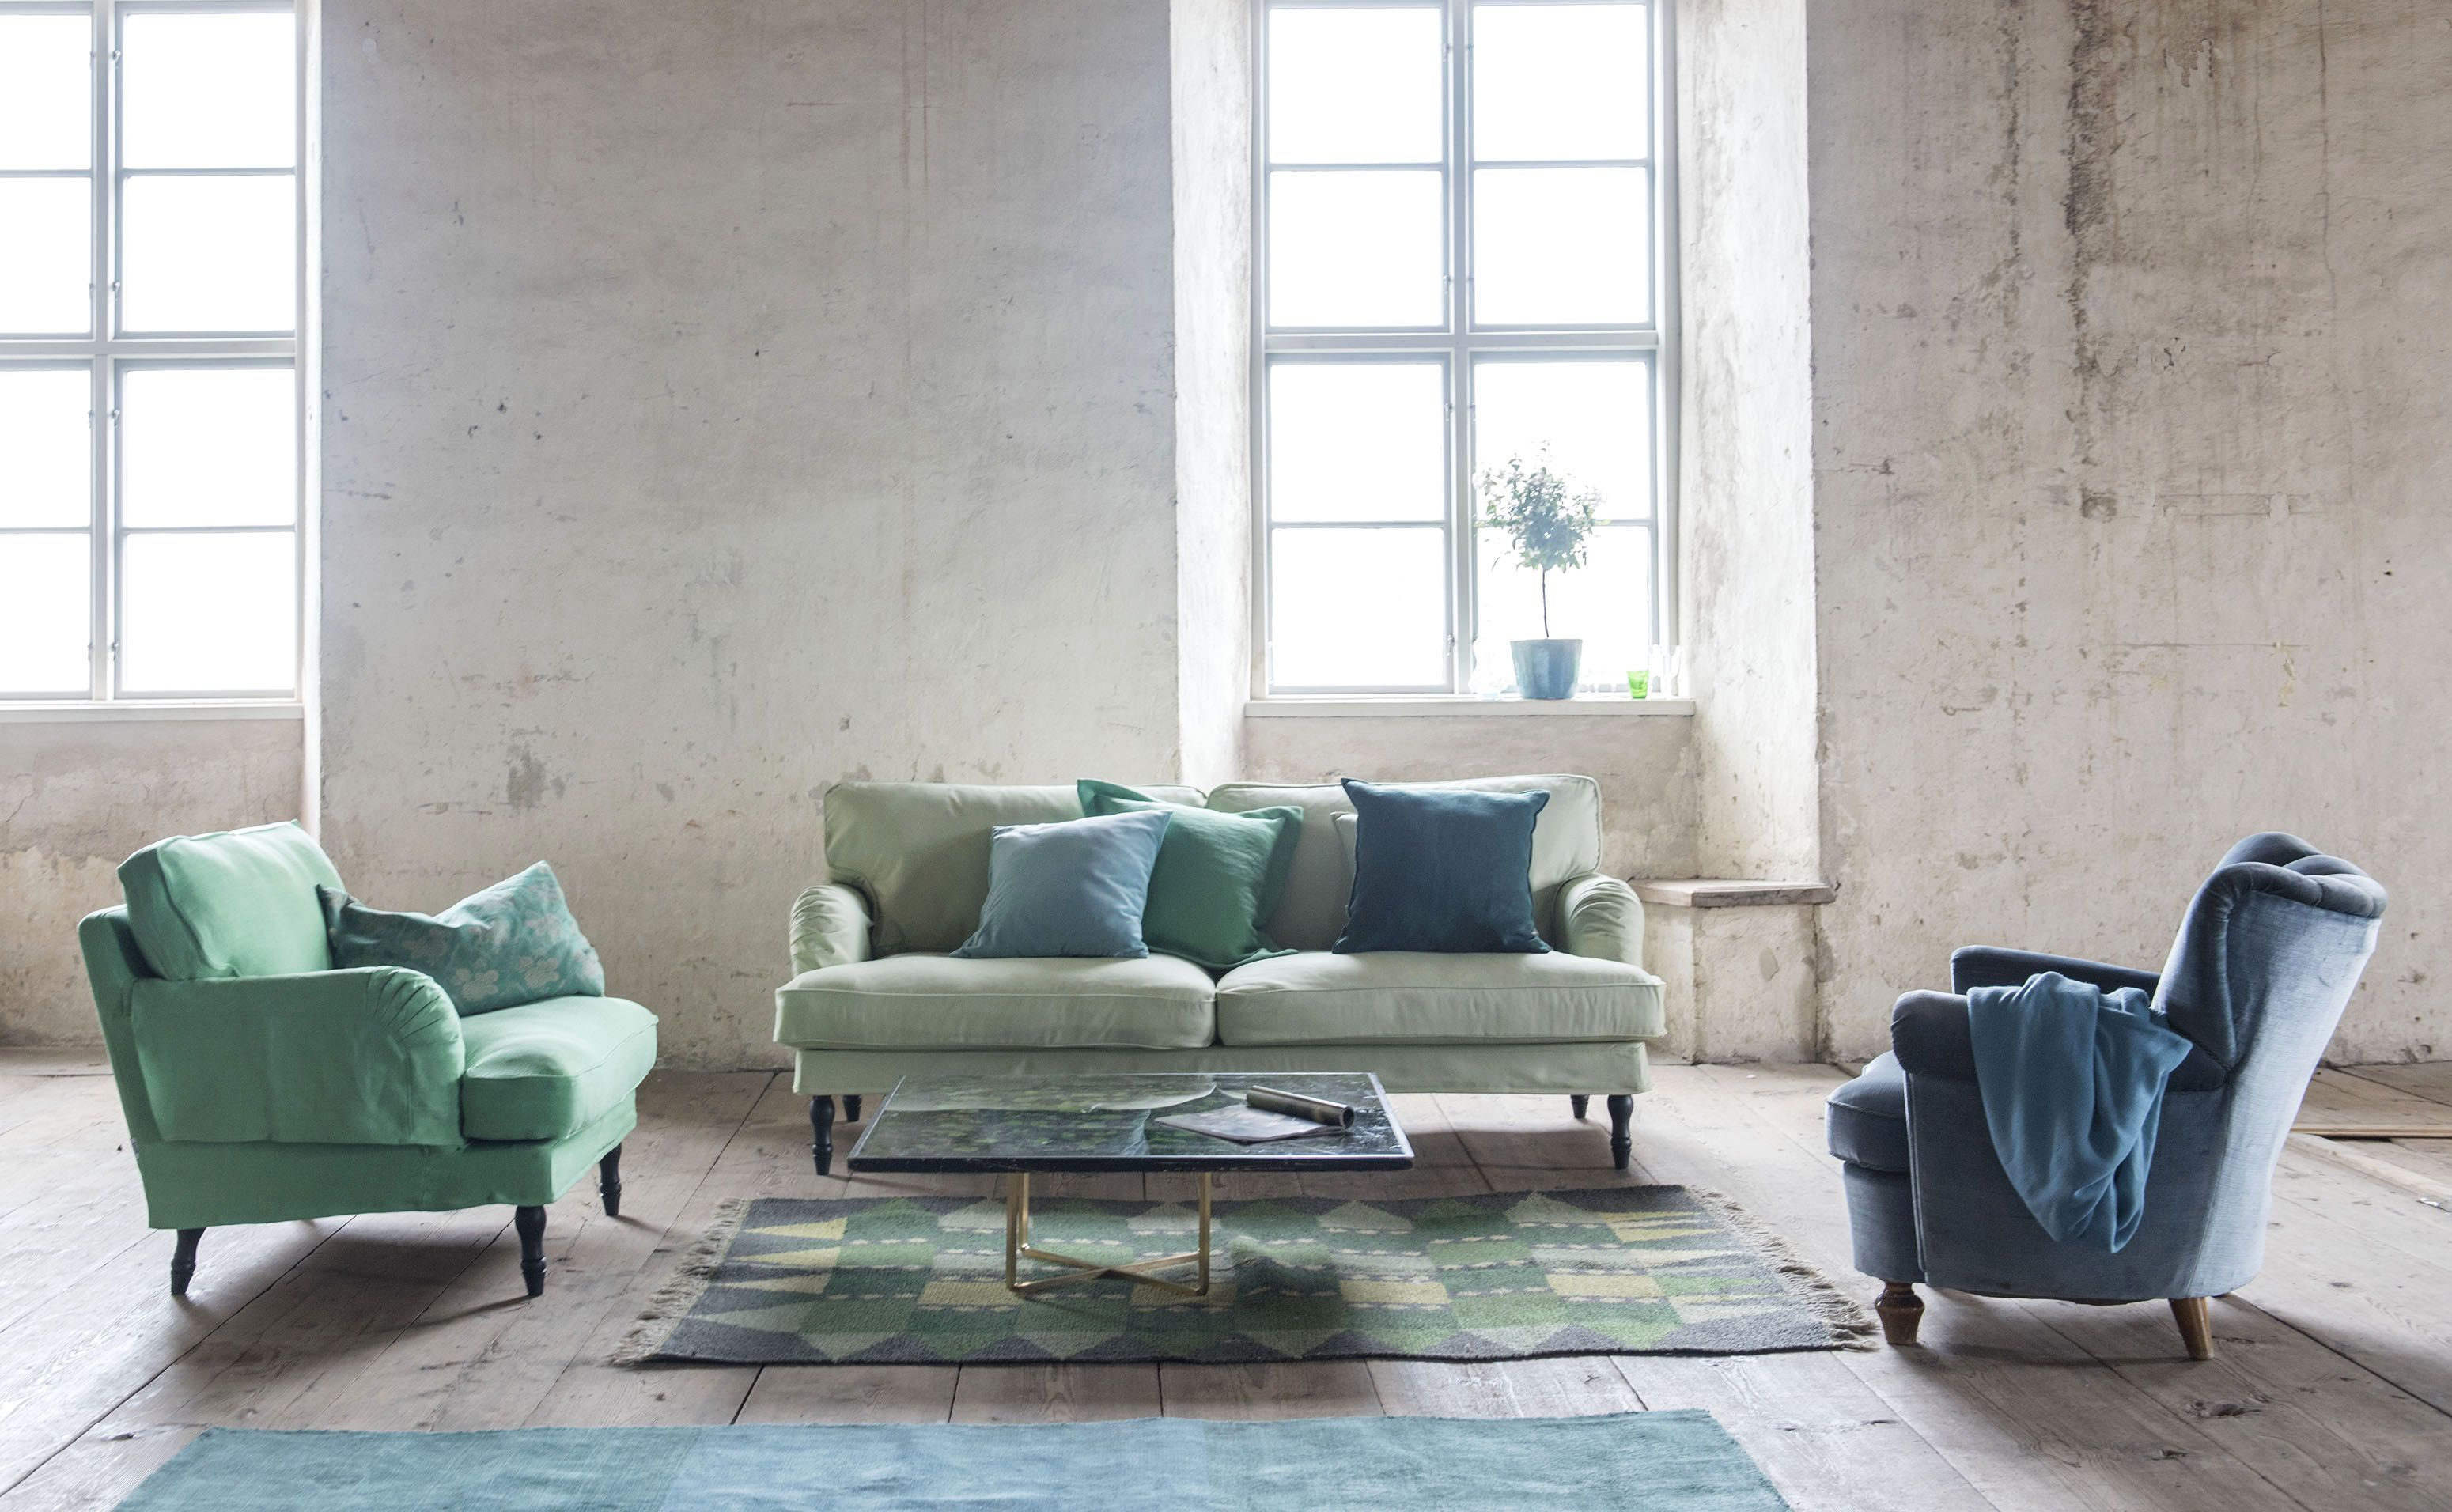 Tones Of Green Stocksund Armchair Cover In Verdigris Brera Lino New Small Circle Blue 3 Seater Sofa Tea Panama Cotton Cushion Covers Mineral